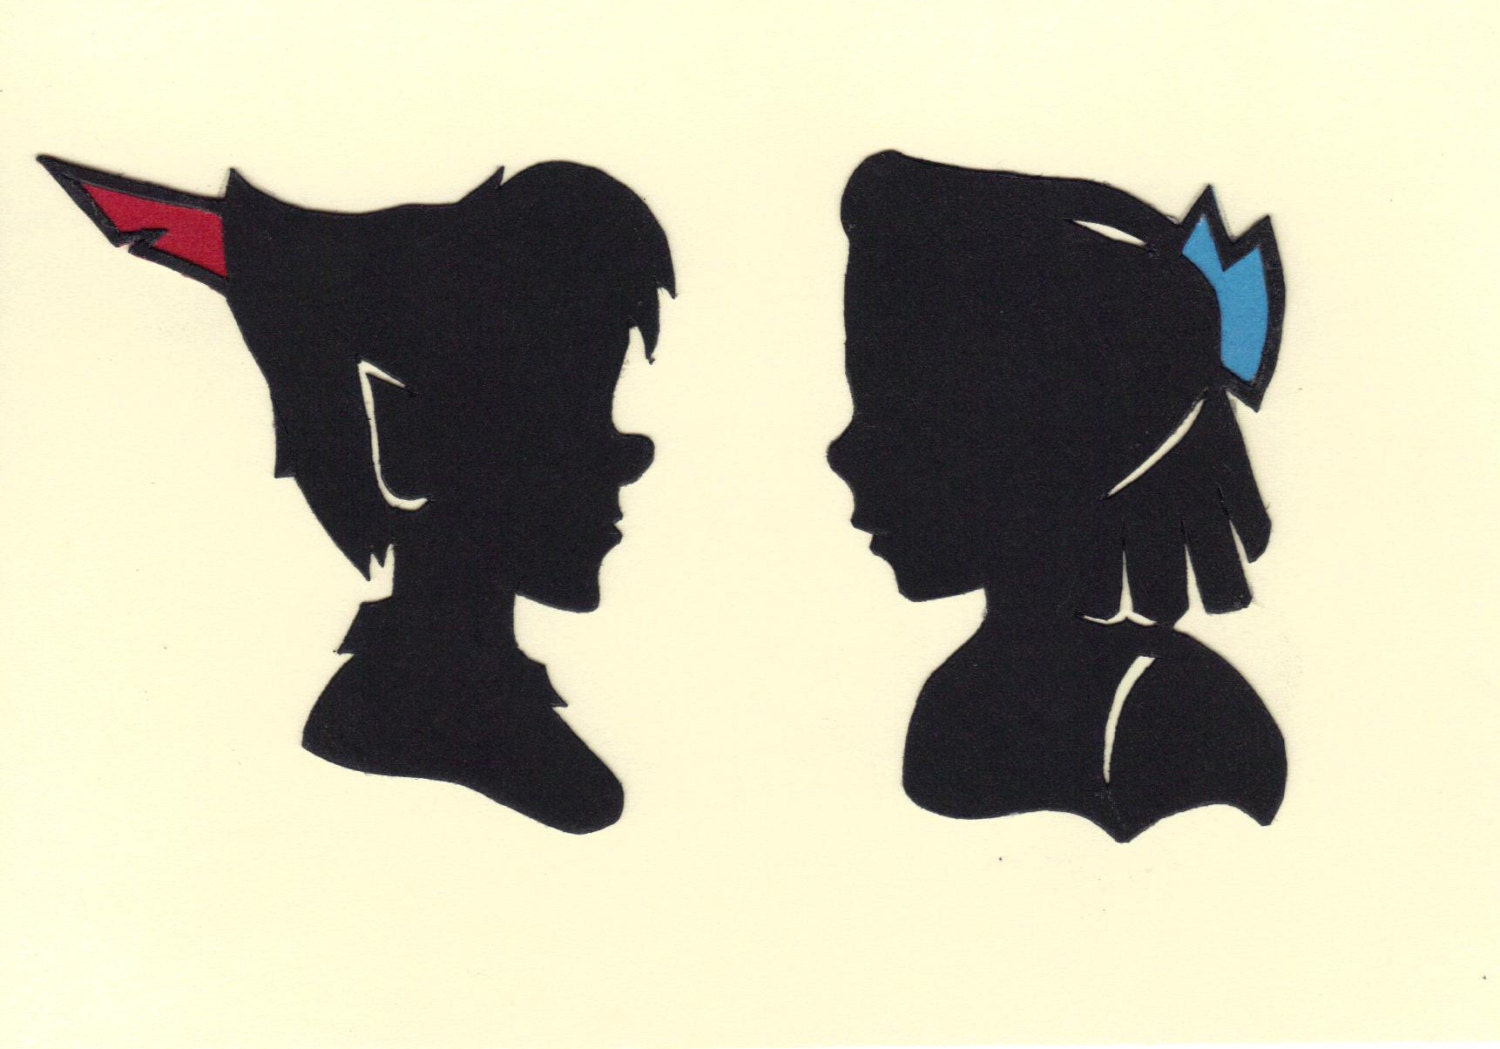 Peter Pan and Wendy Silhouettes